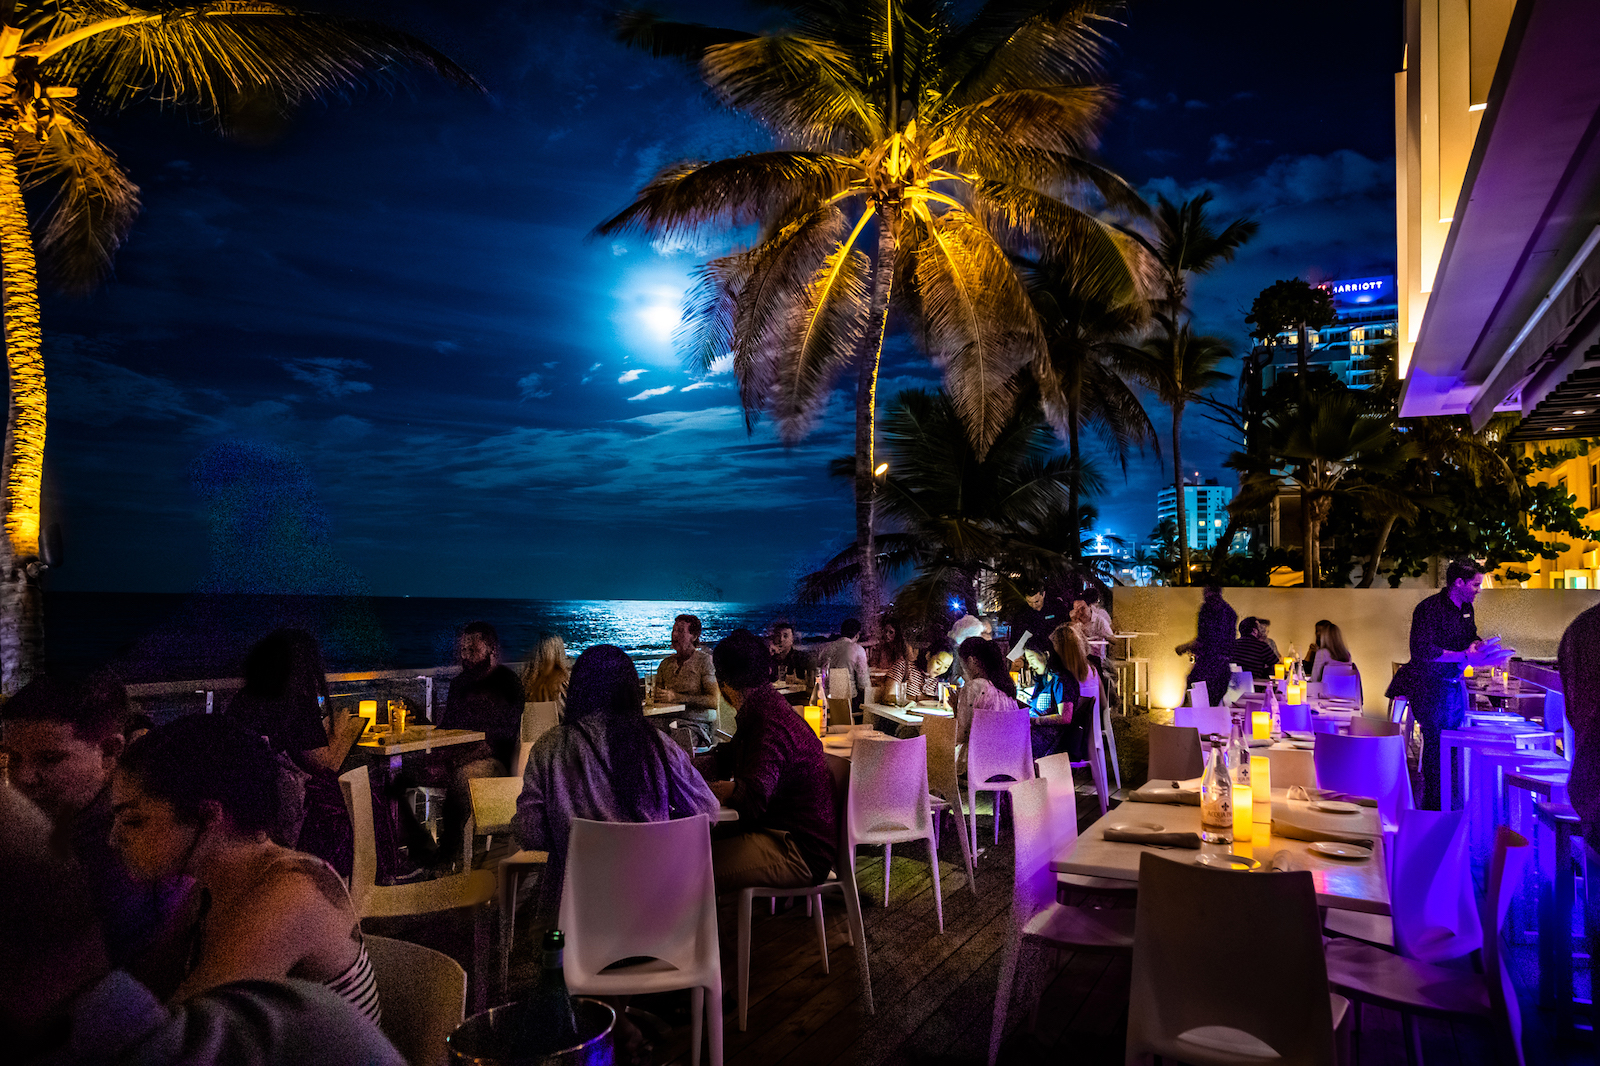 Diners enjoy their meal as well as the view at Oceano.